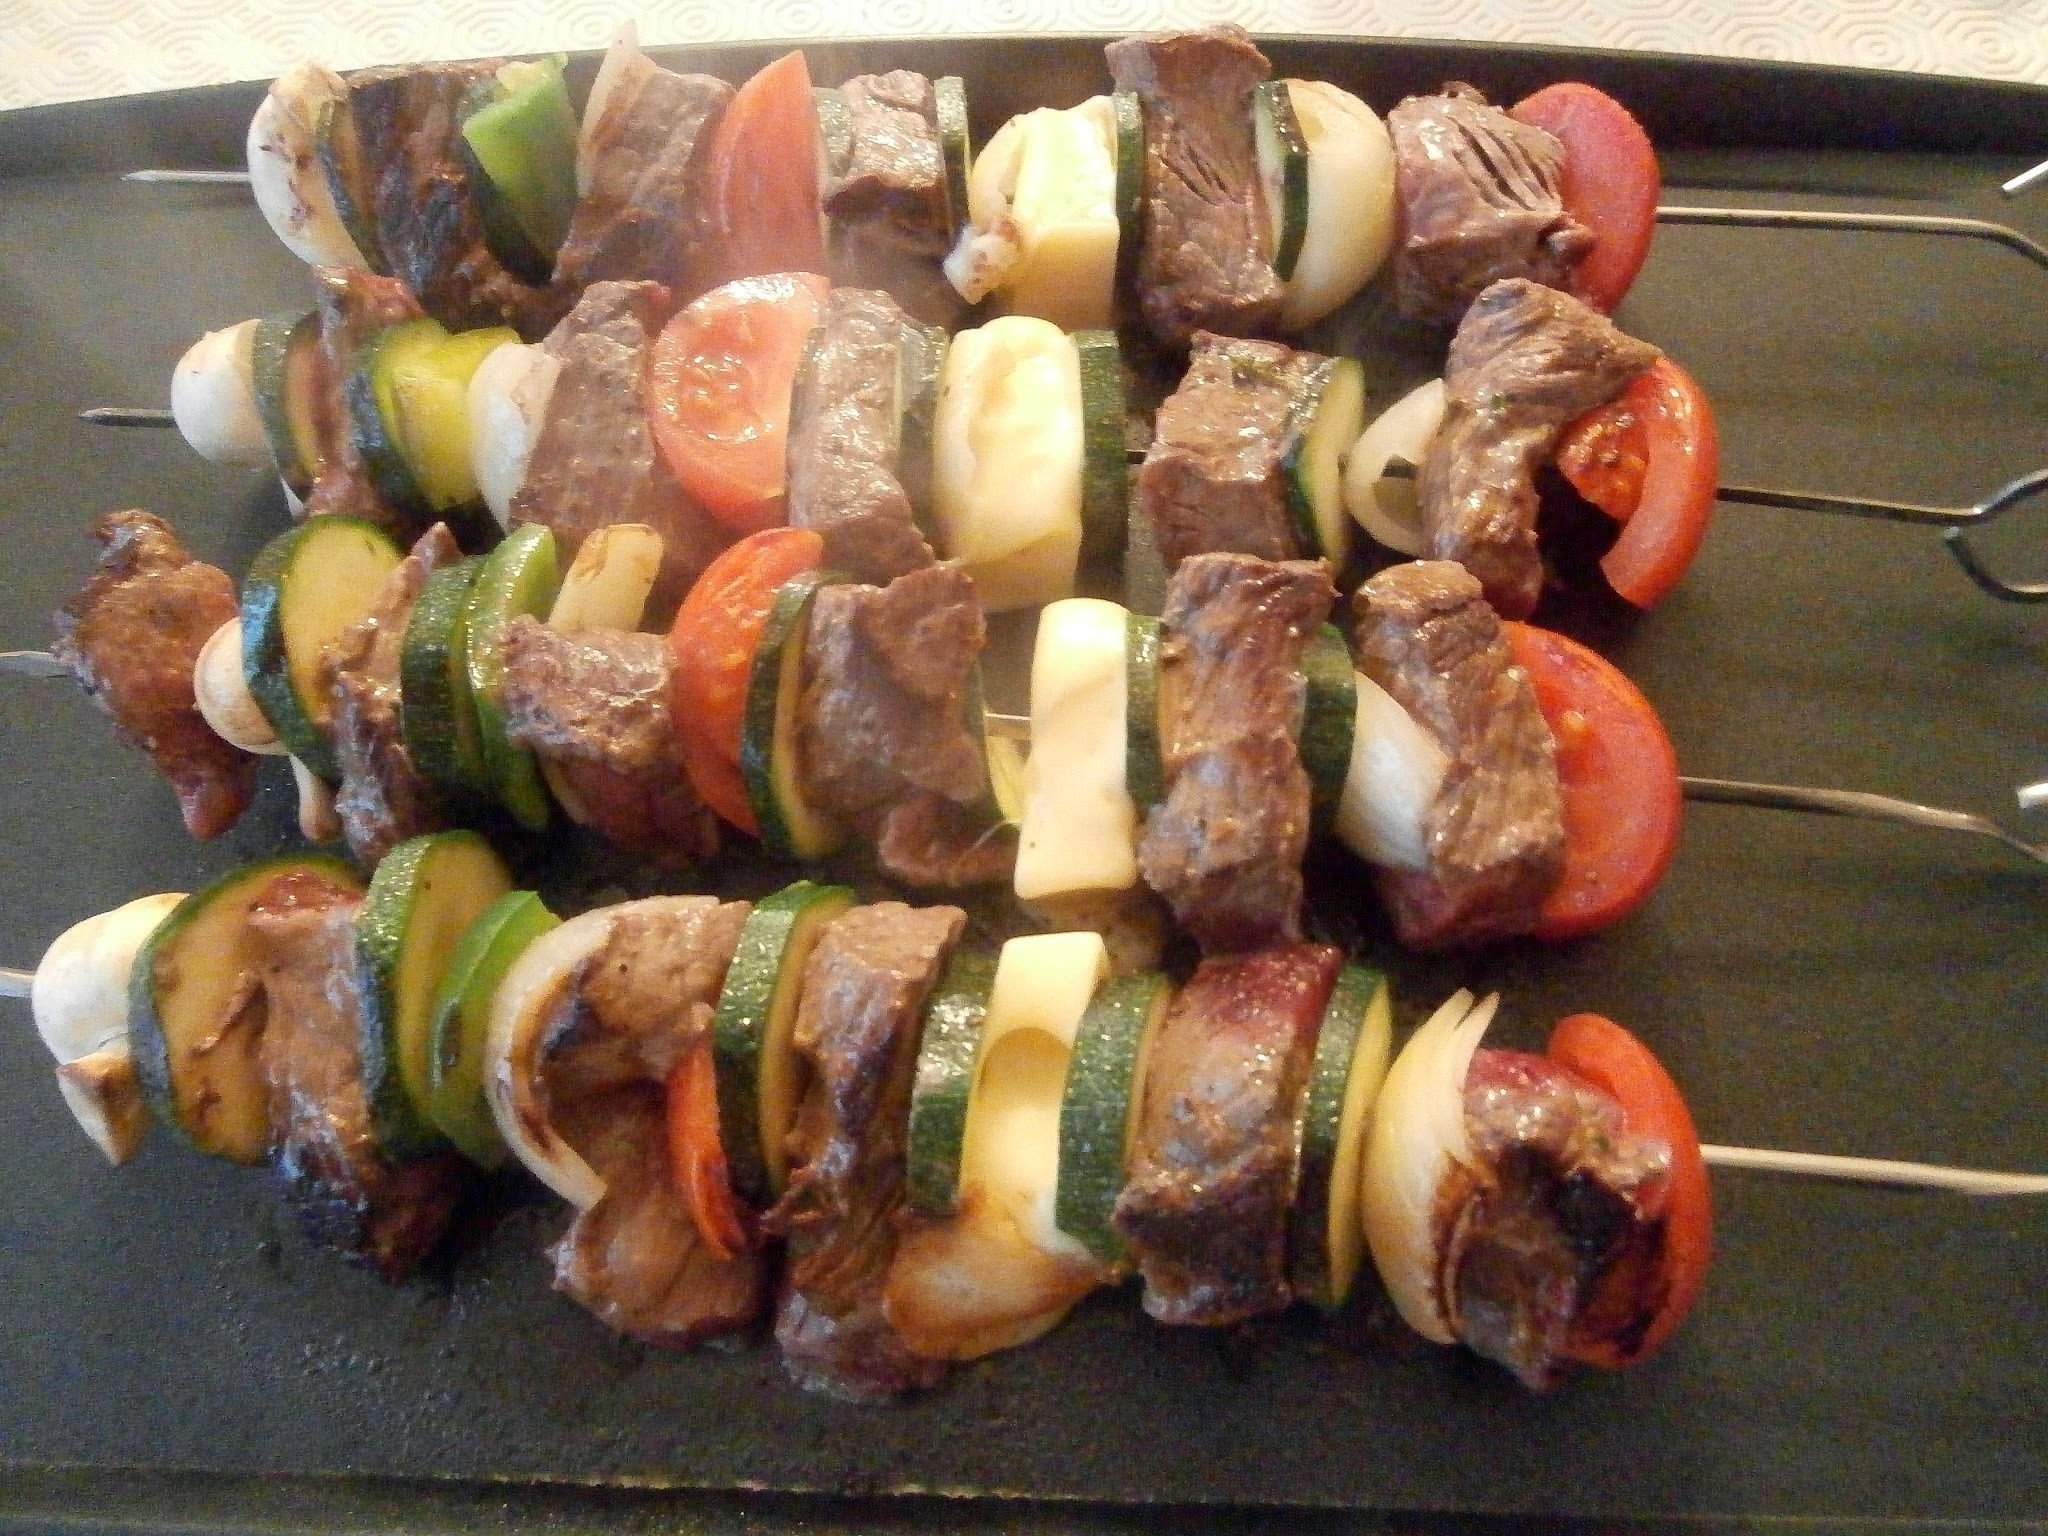 Brochettes de bœuf marinées aux herbes et sauce gorgonzola (Beef skewers marinated with herbs and gorgonzola sauce)